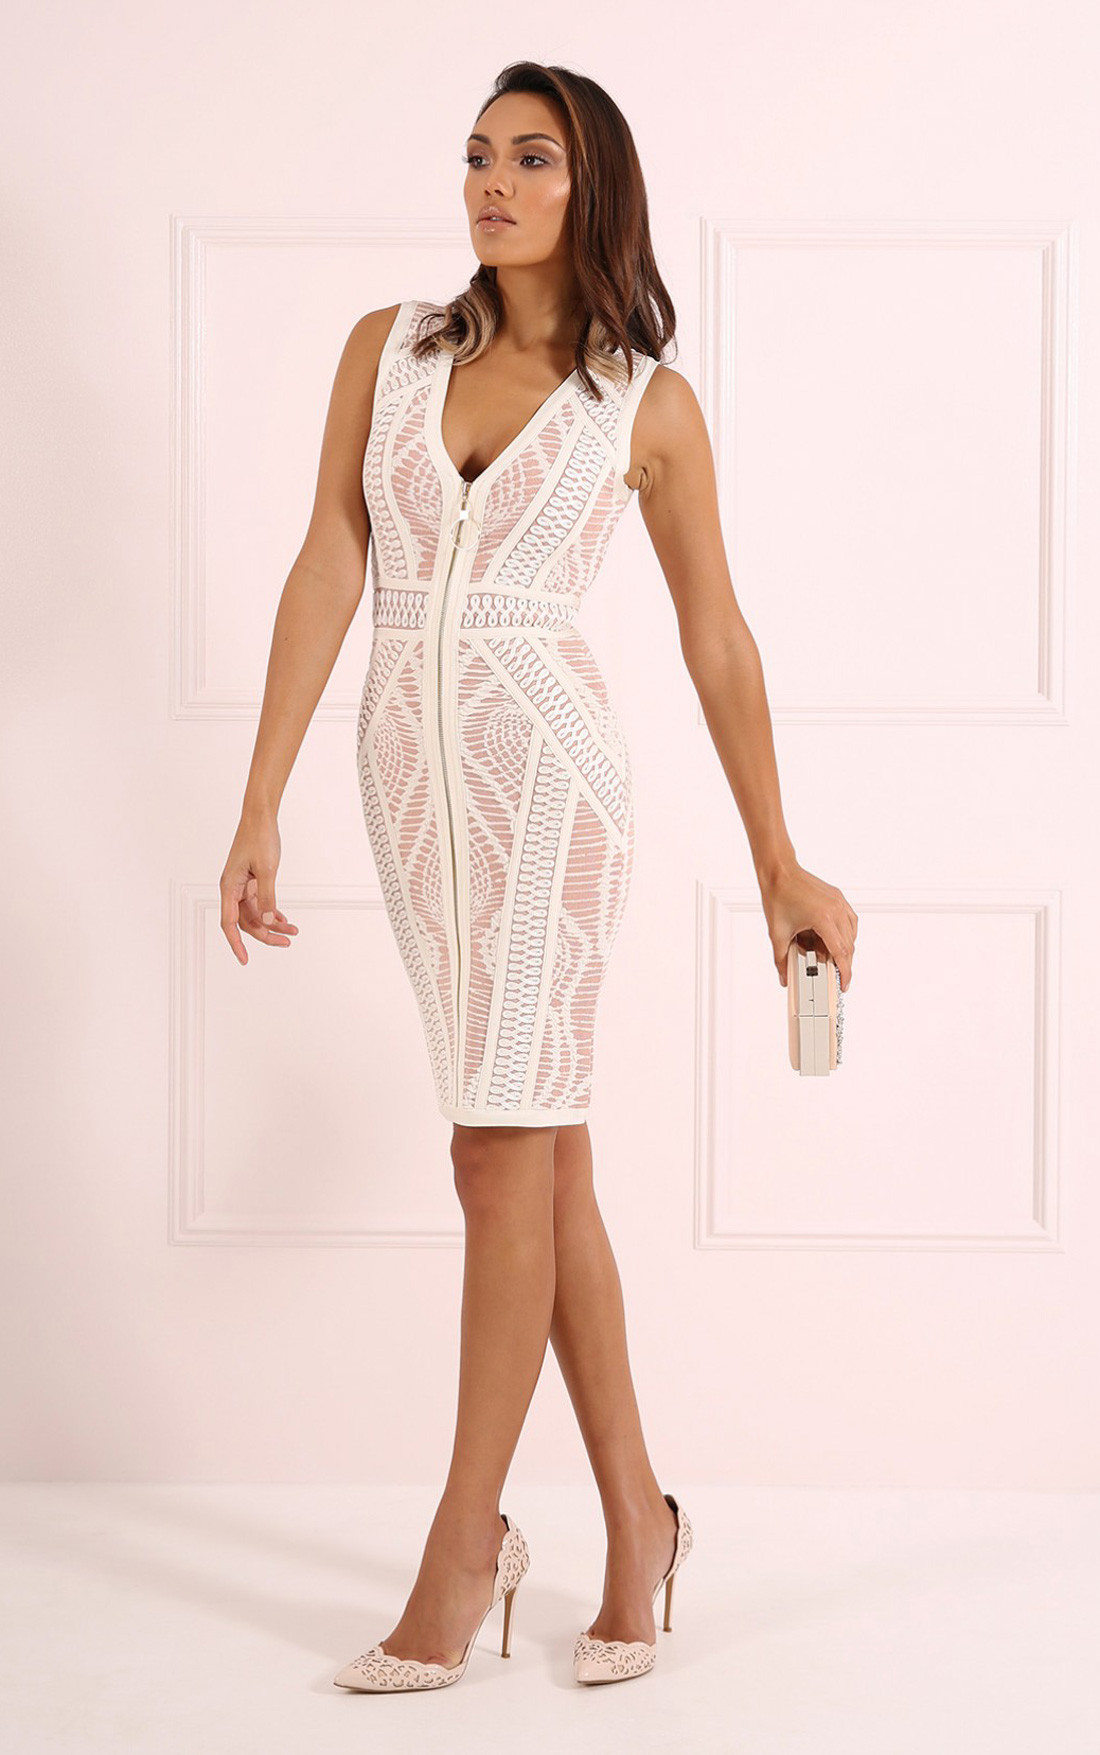 Forever Unique - Montana Ivory Nude Dress (CH0603)